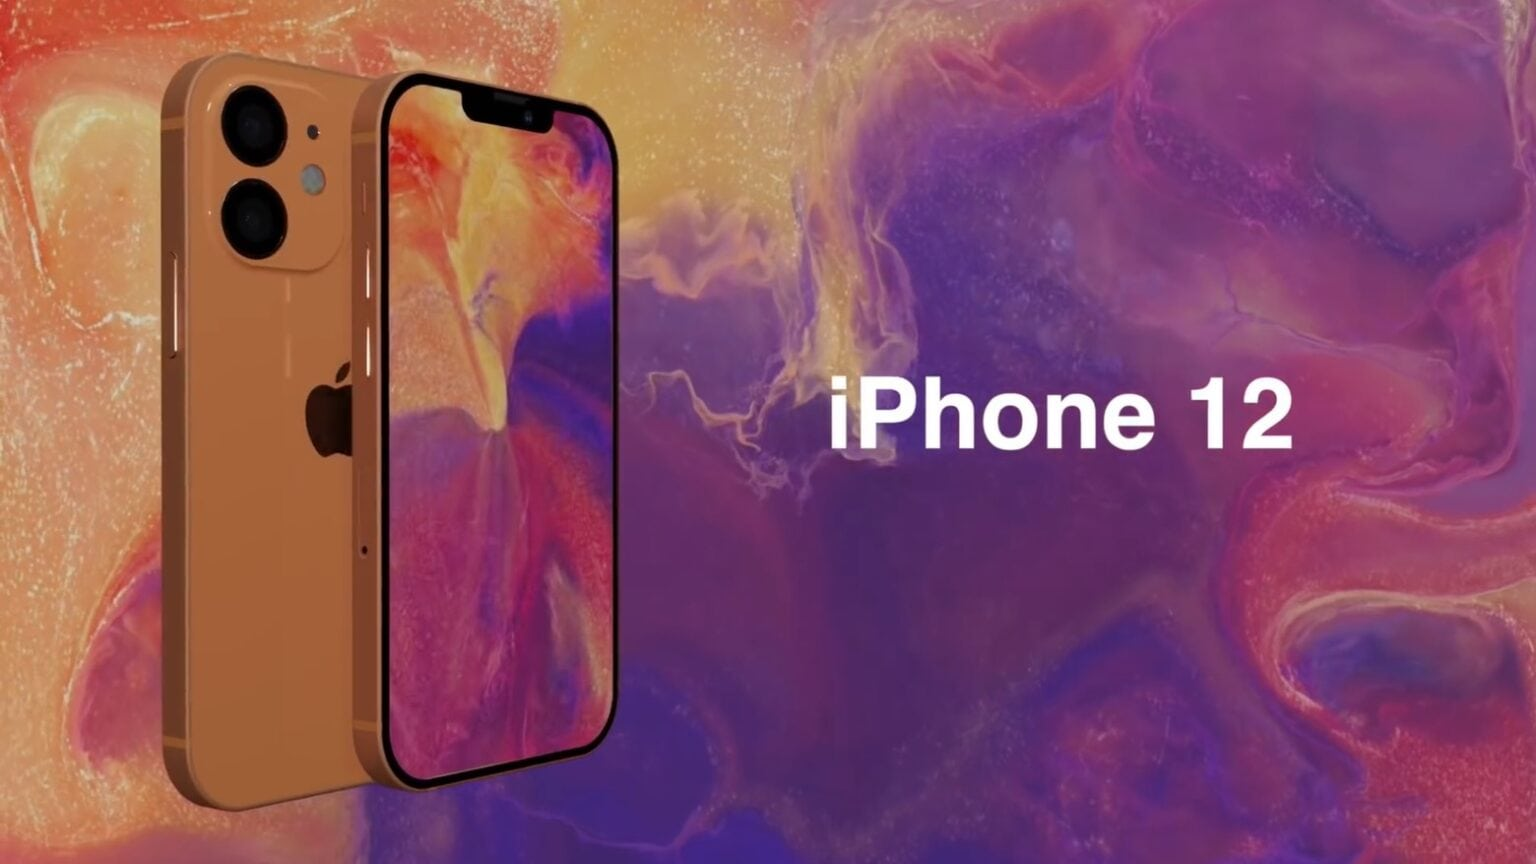 iPhone 12 rumors mix in this concept video.